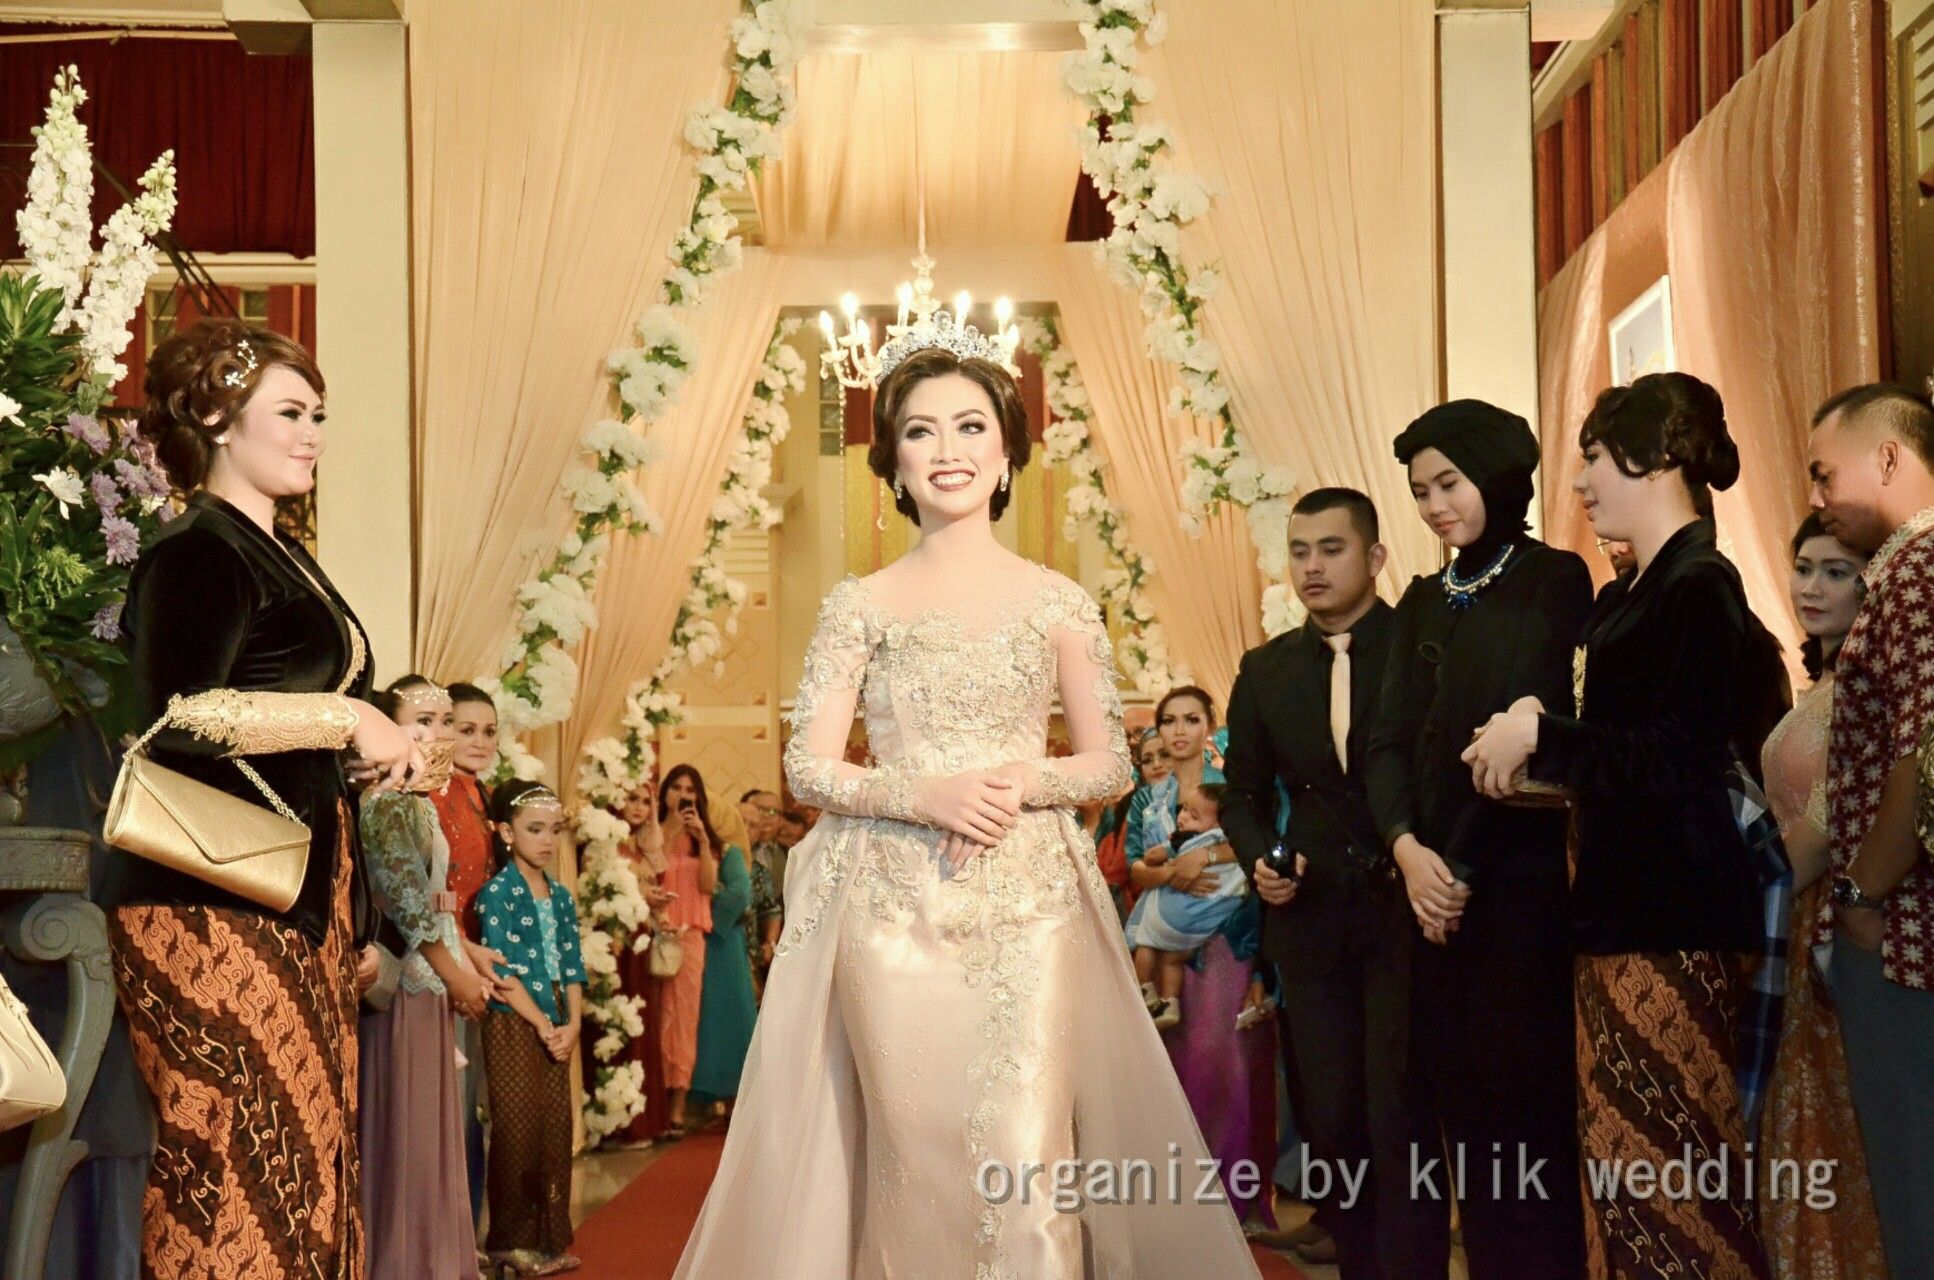 Klik Production Professional Event Wedding Organizer Bandung Indonesia Line Klikpro Wa 6282116688679 Pin 52bd9d62 Pernikahan Acara Pernikahan Pesta